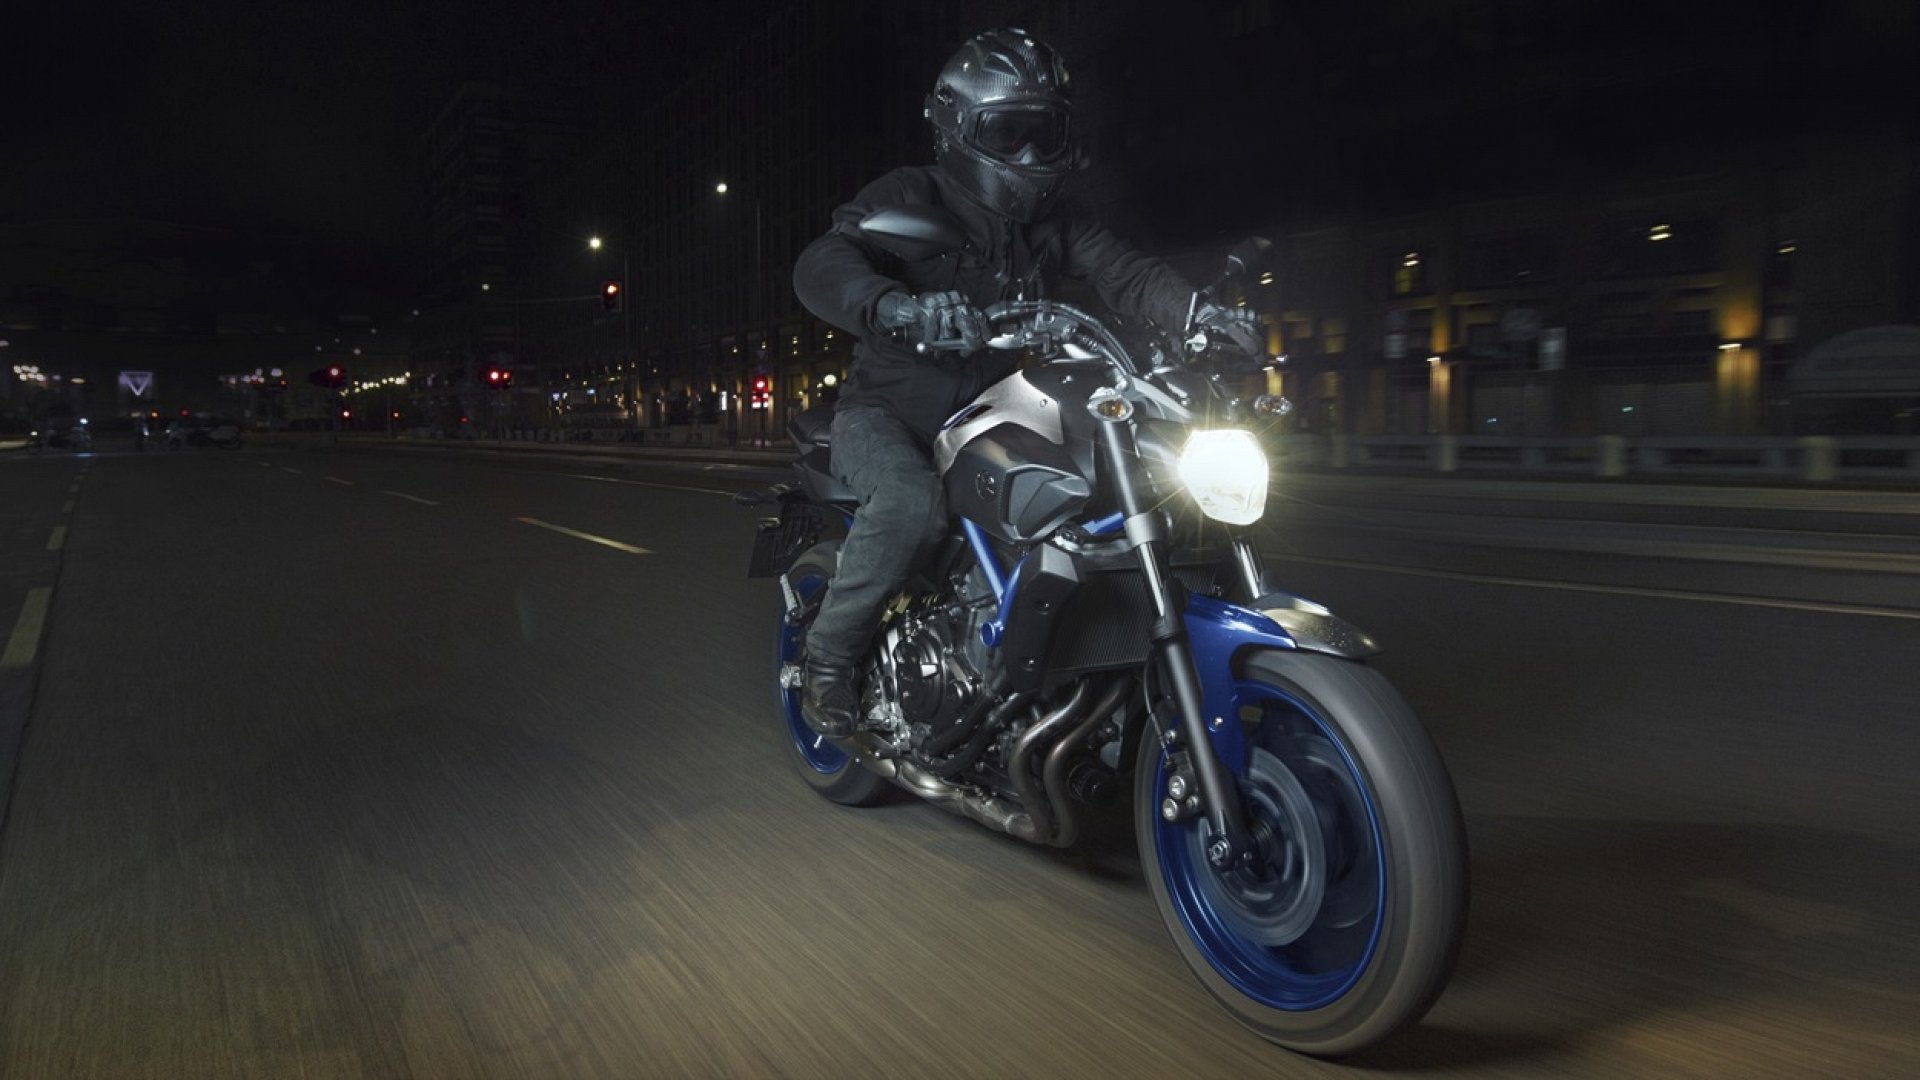 New 2016 Yamaha MT-07 / ABS for sale. Finance available and part ...: www.cmcbikes.com/new-yamaha-motorcycles/2016-yamaha-mt-07-abs